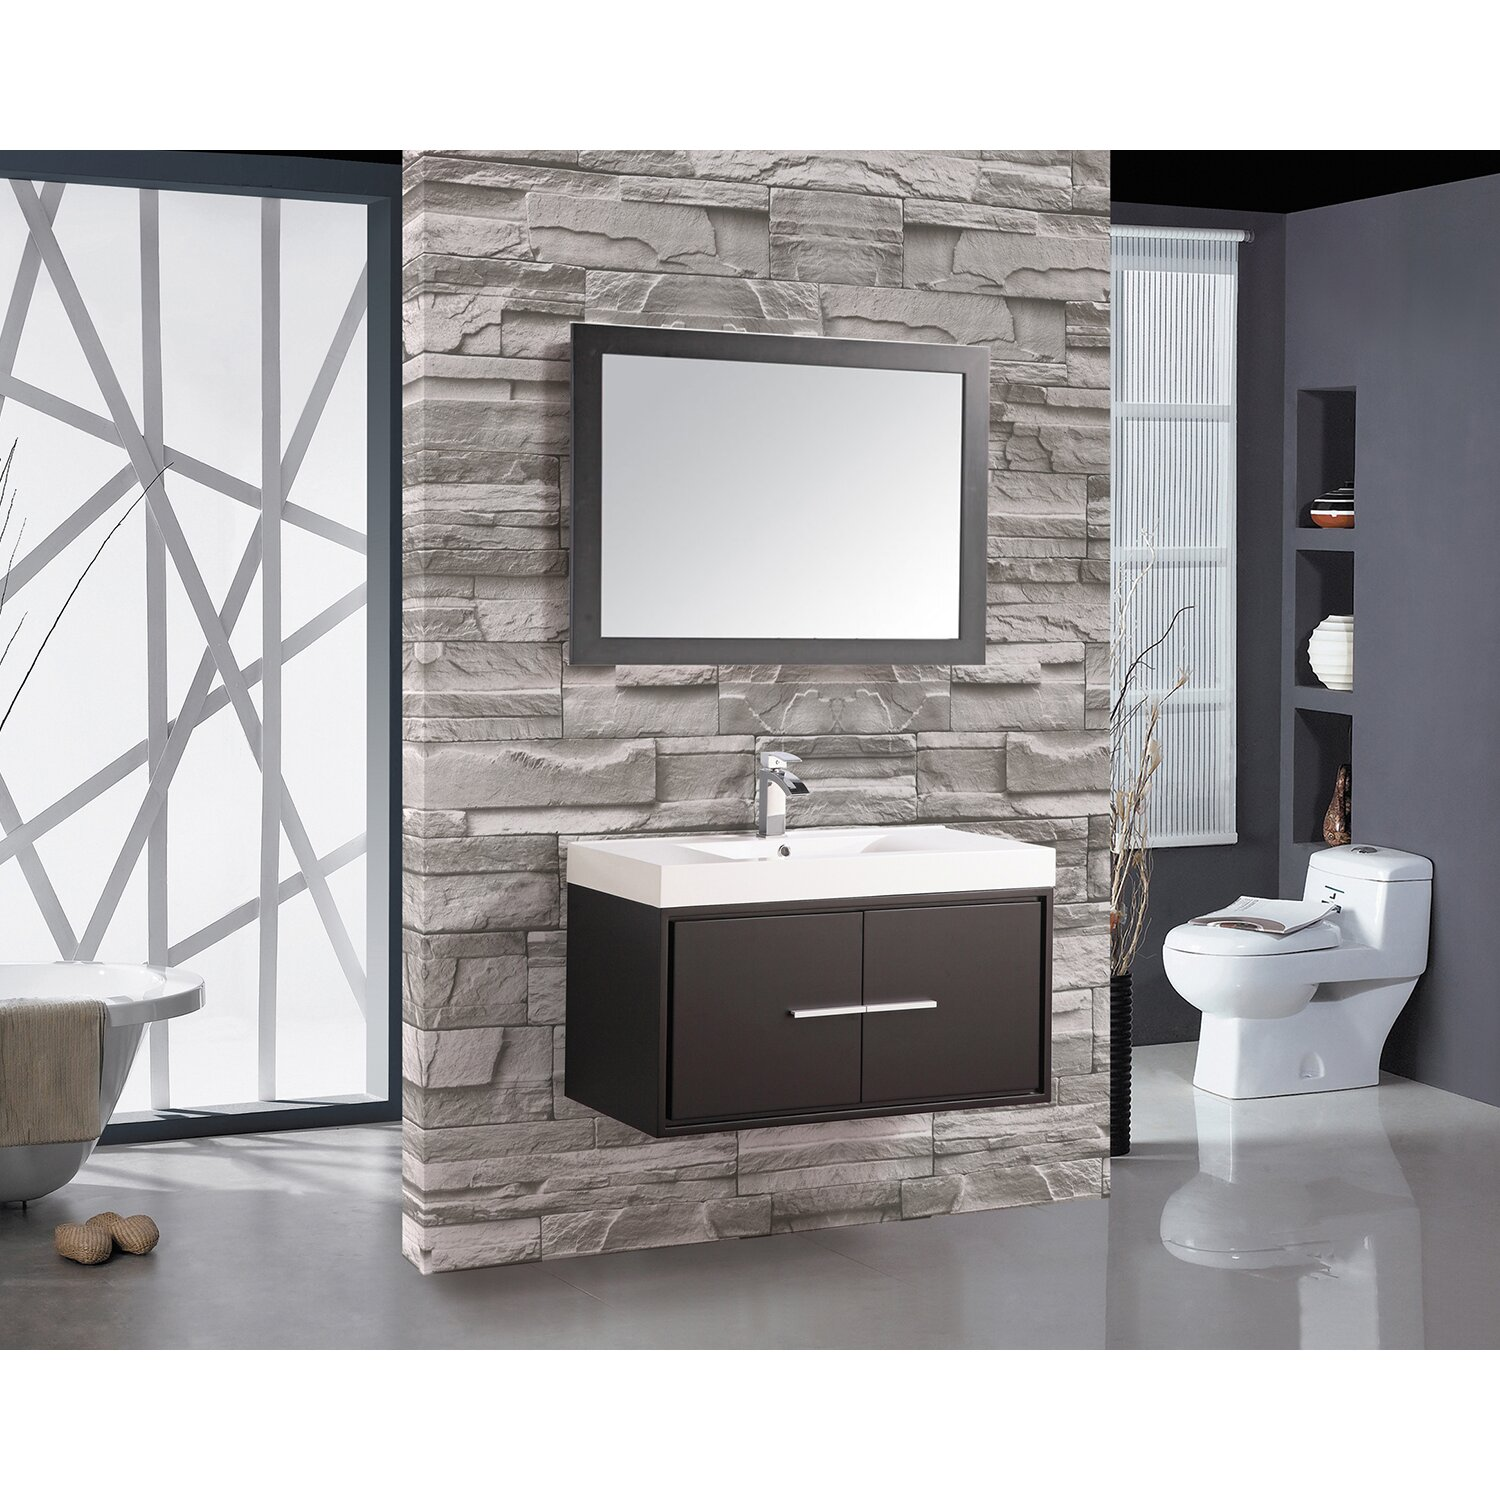 Mtdvanities Cypress 36 Single Floating Bathroom Vanity Set With Mirror Wayfair